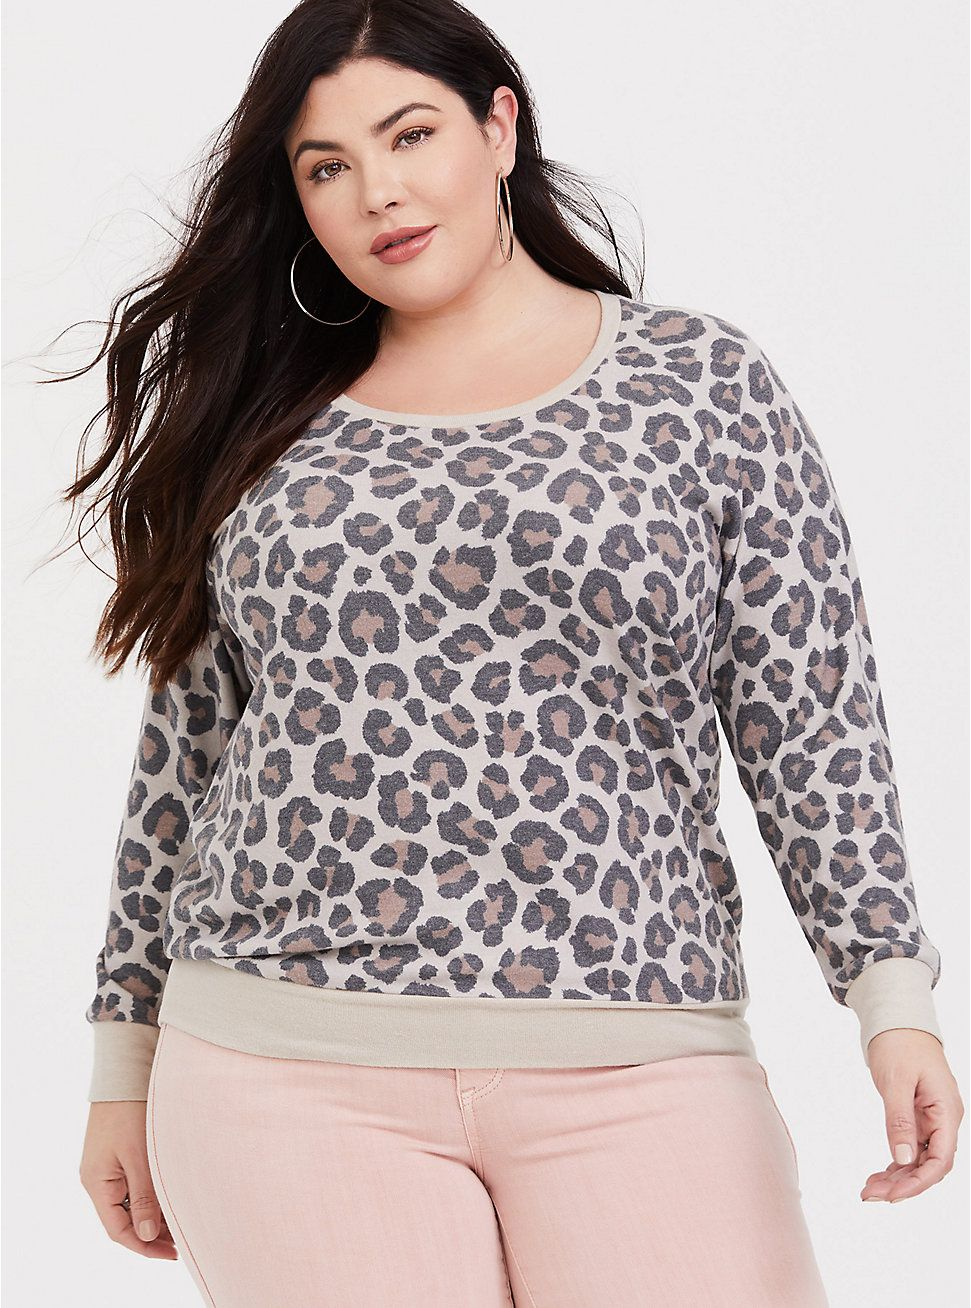 6504869b044 Leopard Cozy Brushed Hacci Sweatshirt in 2019 | Clothes | Lace ...